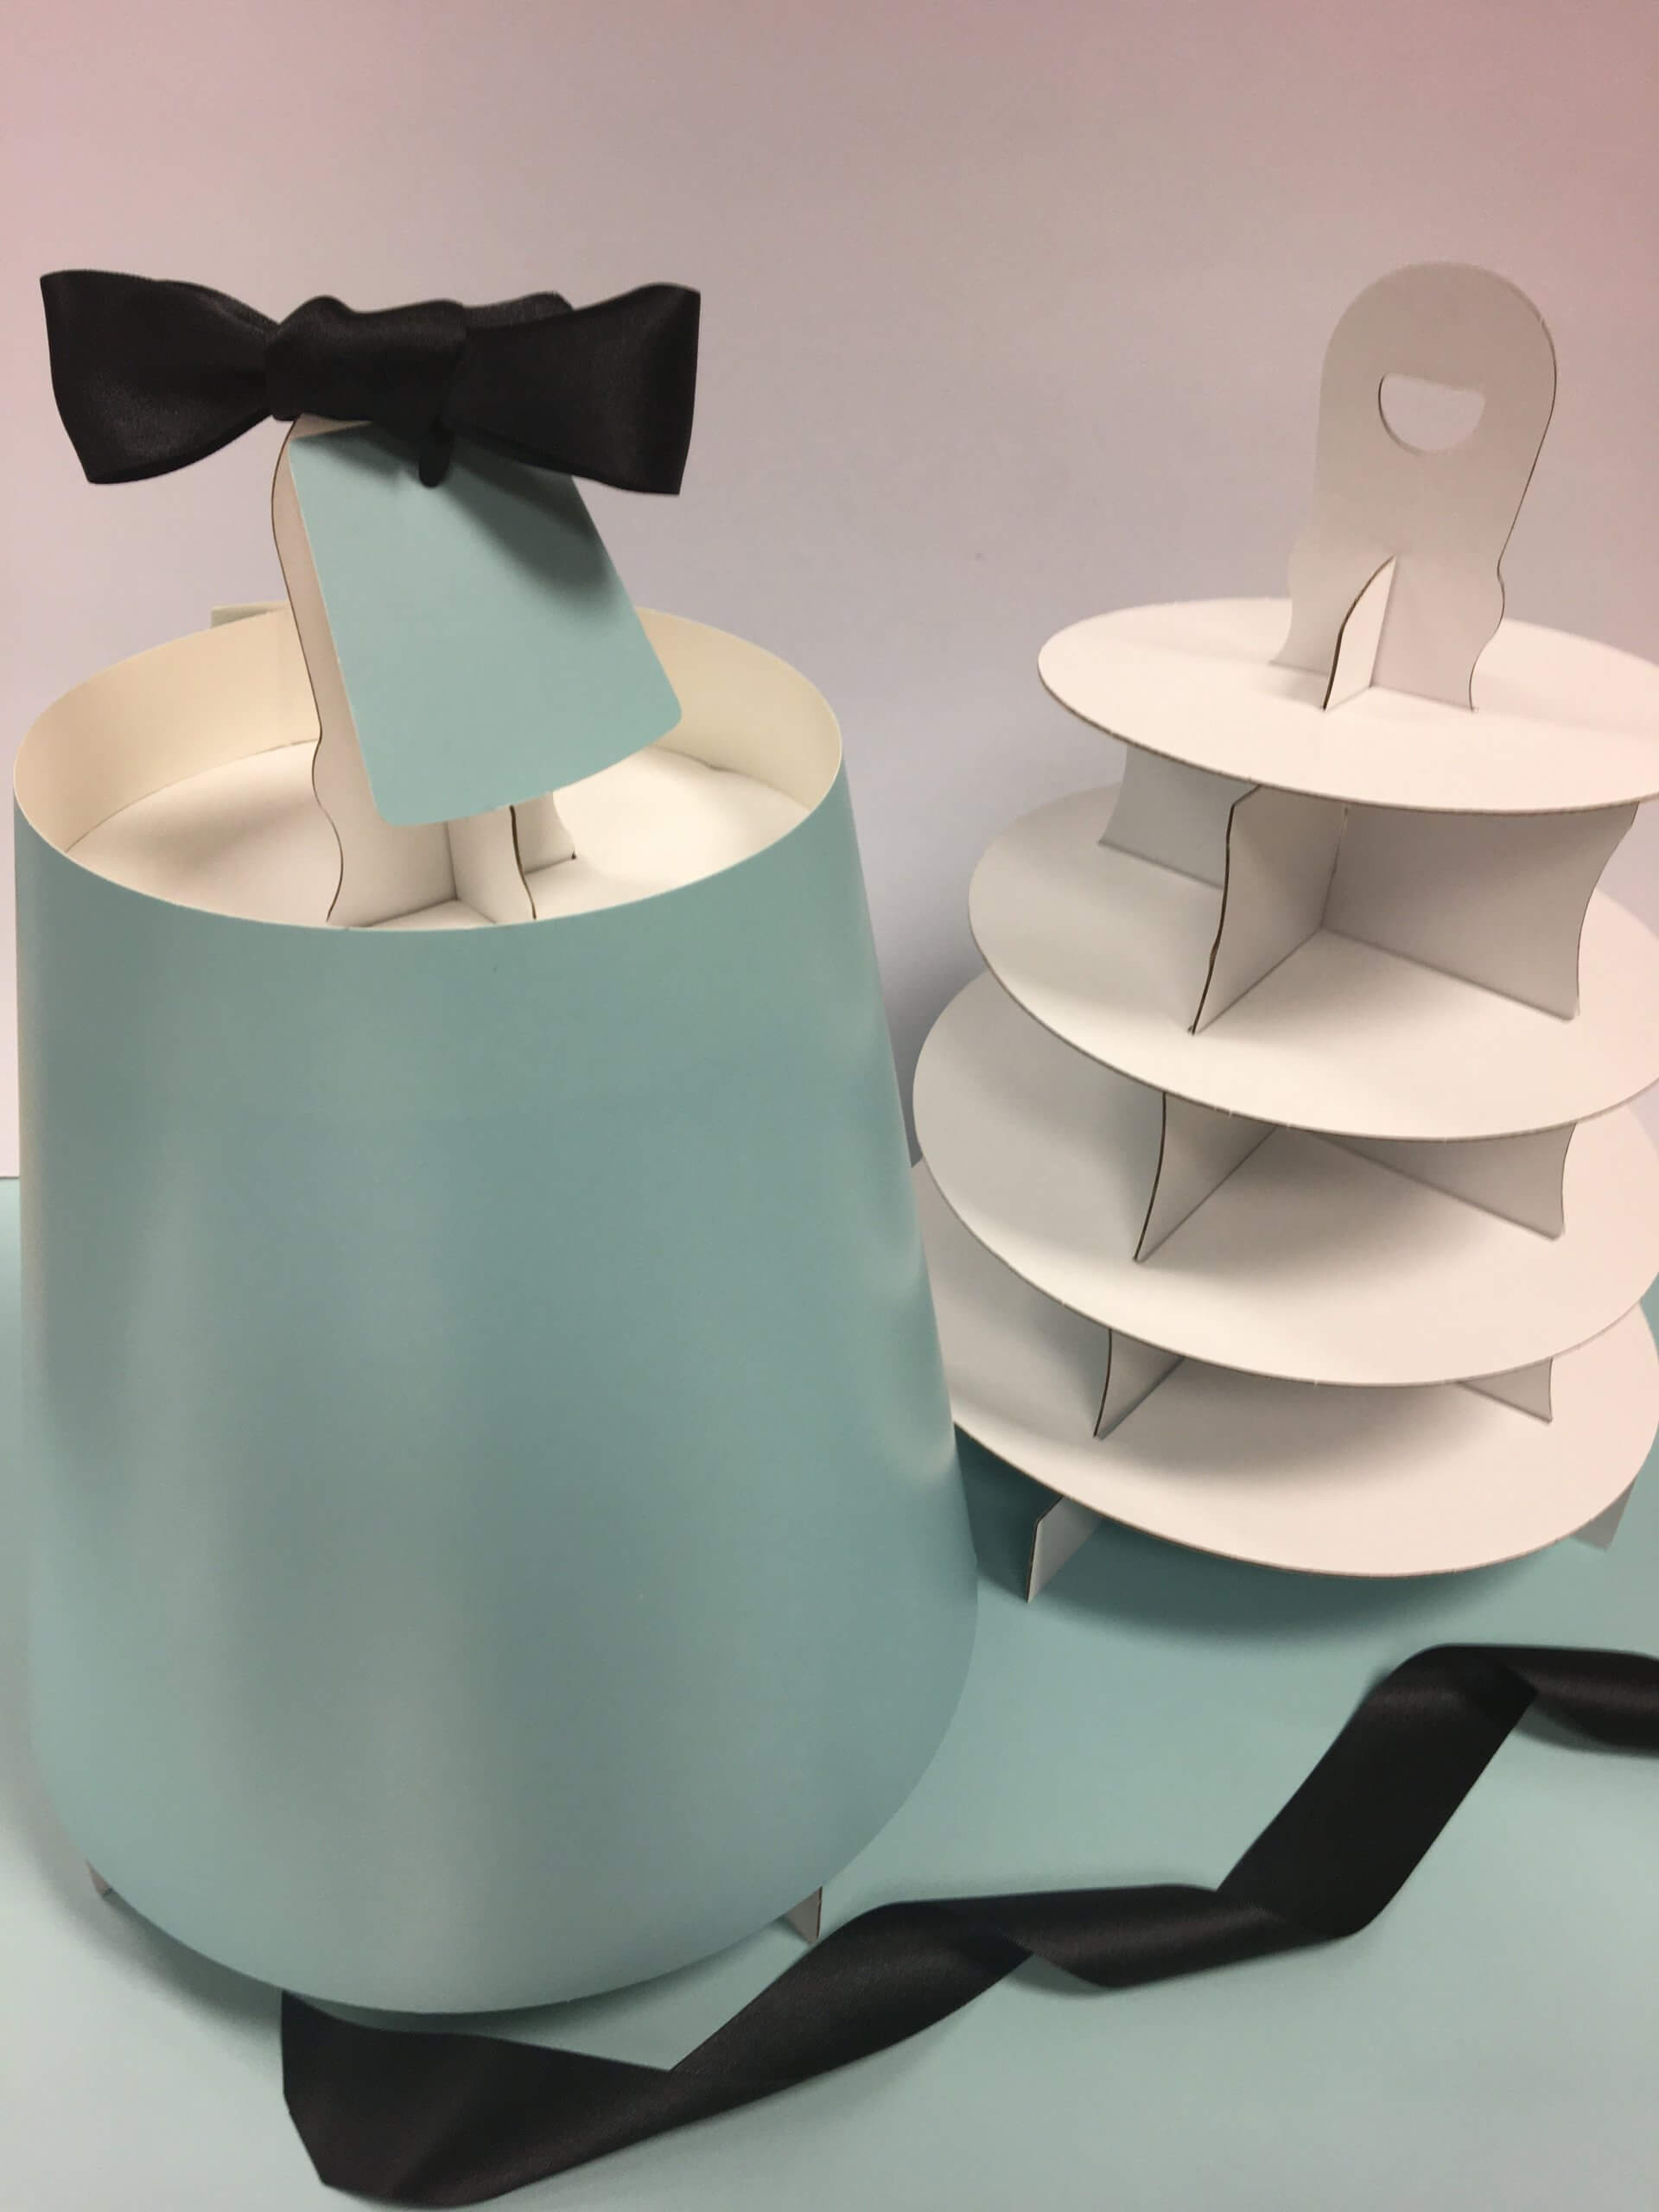 4 Tier Blue Caddy also available in 3 tier size